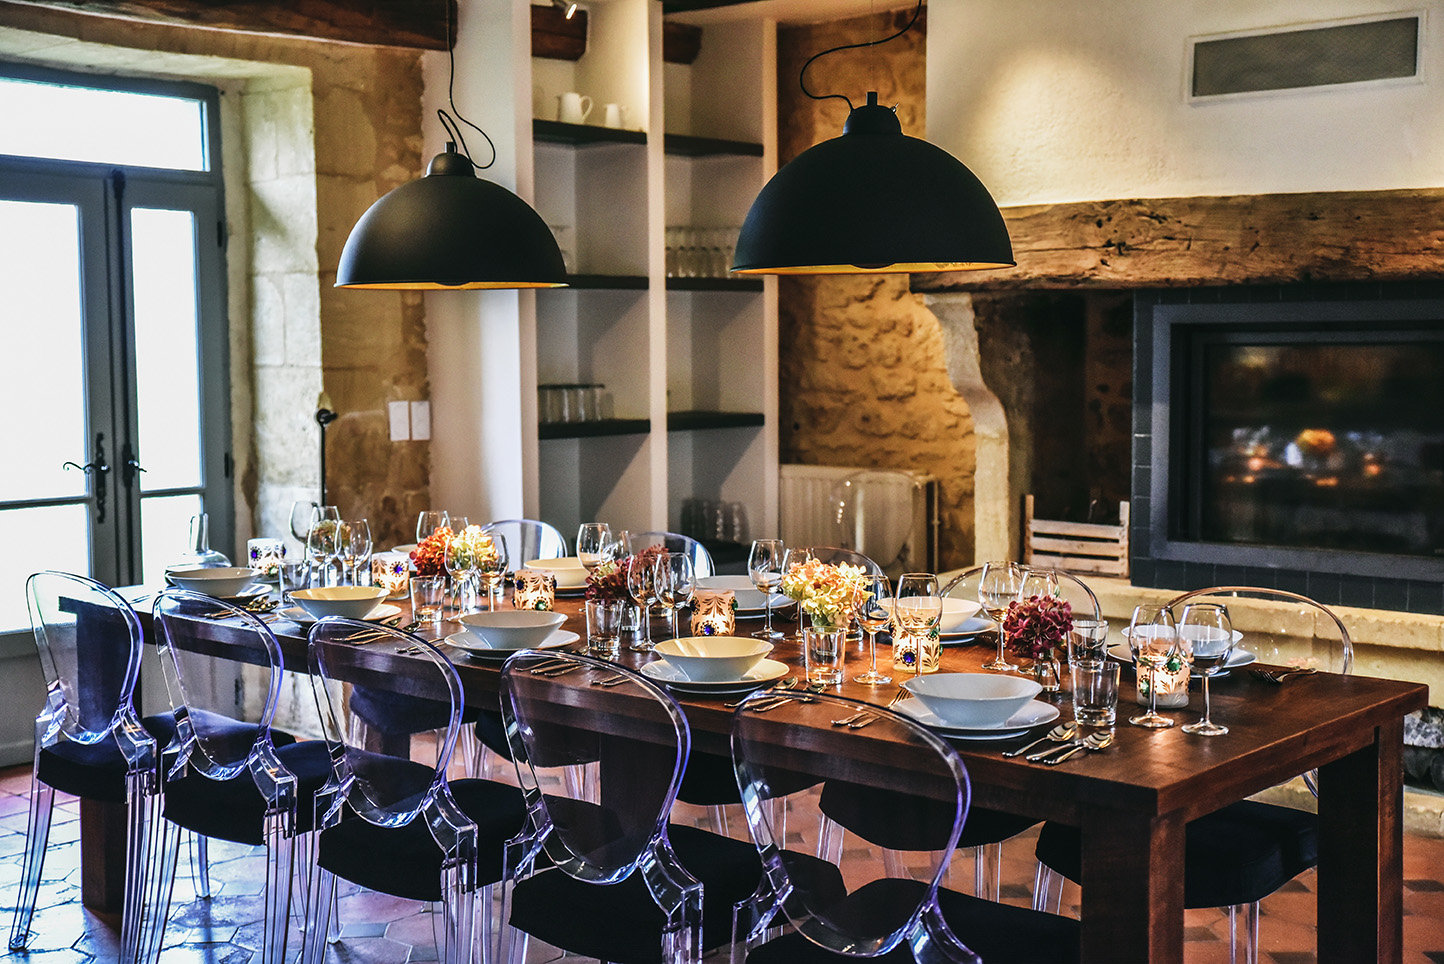 The table laid for dinner in front of a fireplace in Le Mas, a luxury holiday home in the Dordogne